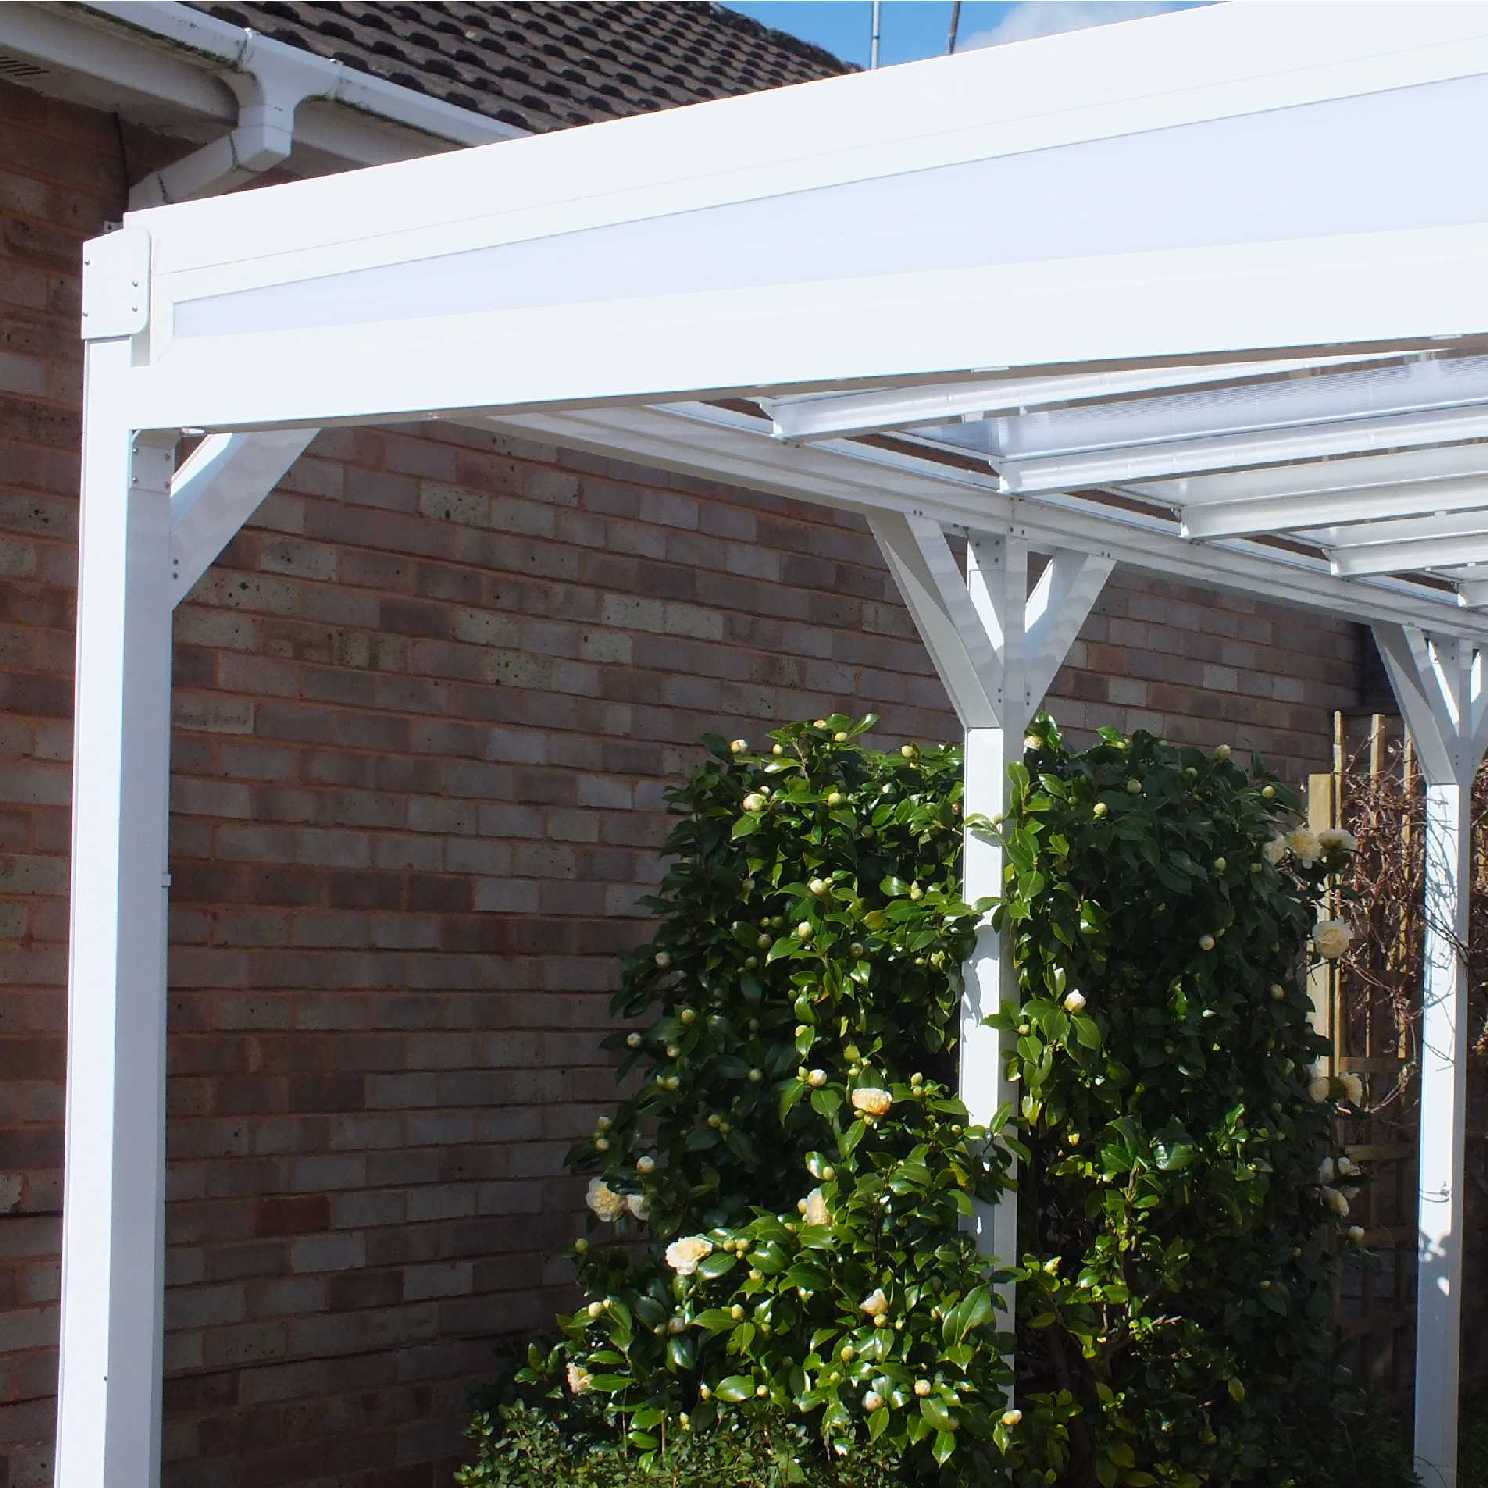 Omega Smart Lean-To Canopy with 16mm Polycarbonate Glazing - 8.4m (W) x 4.0m (P), (4) Supporting Posts from Omega Build